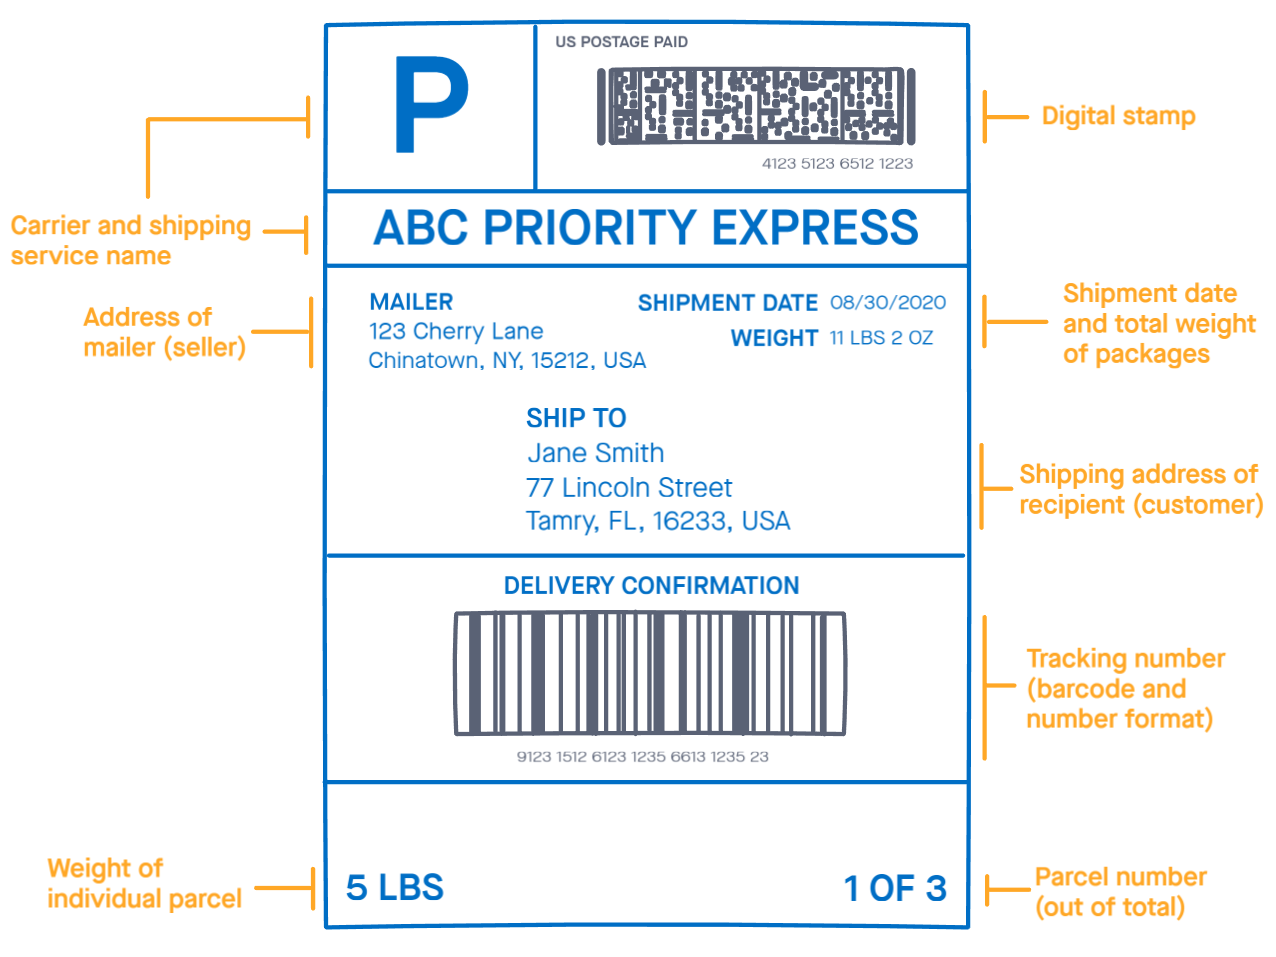 The shipping label is mostly used by the carrier service and contains important information such as tracking number, postal details and address of the recipient.